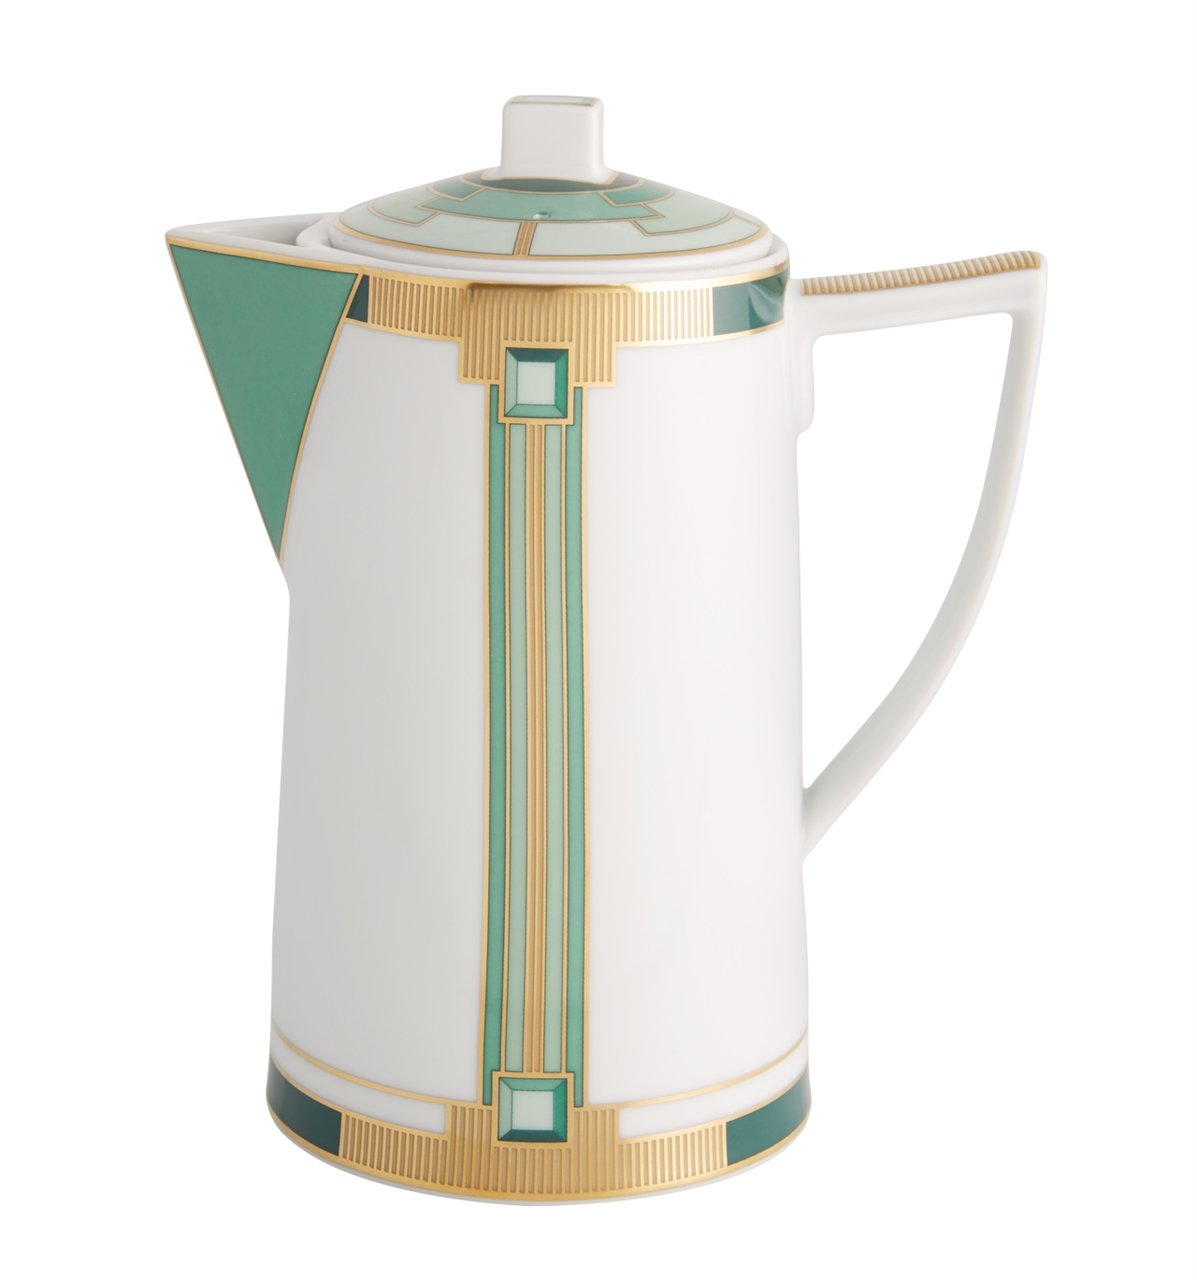 VISTA ALEGRE - EMERALD (Ref # 21122001) Porcelain Coffee Pot - 30oz by Unknown